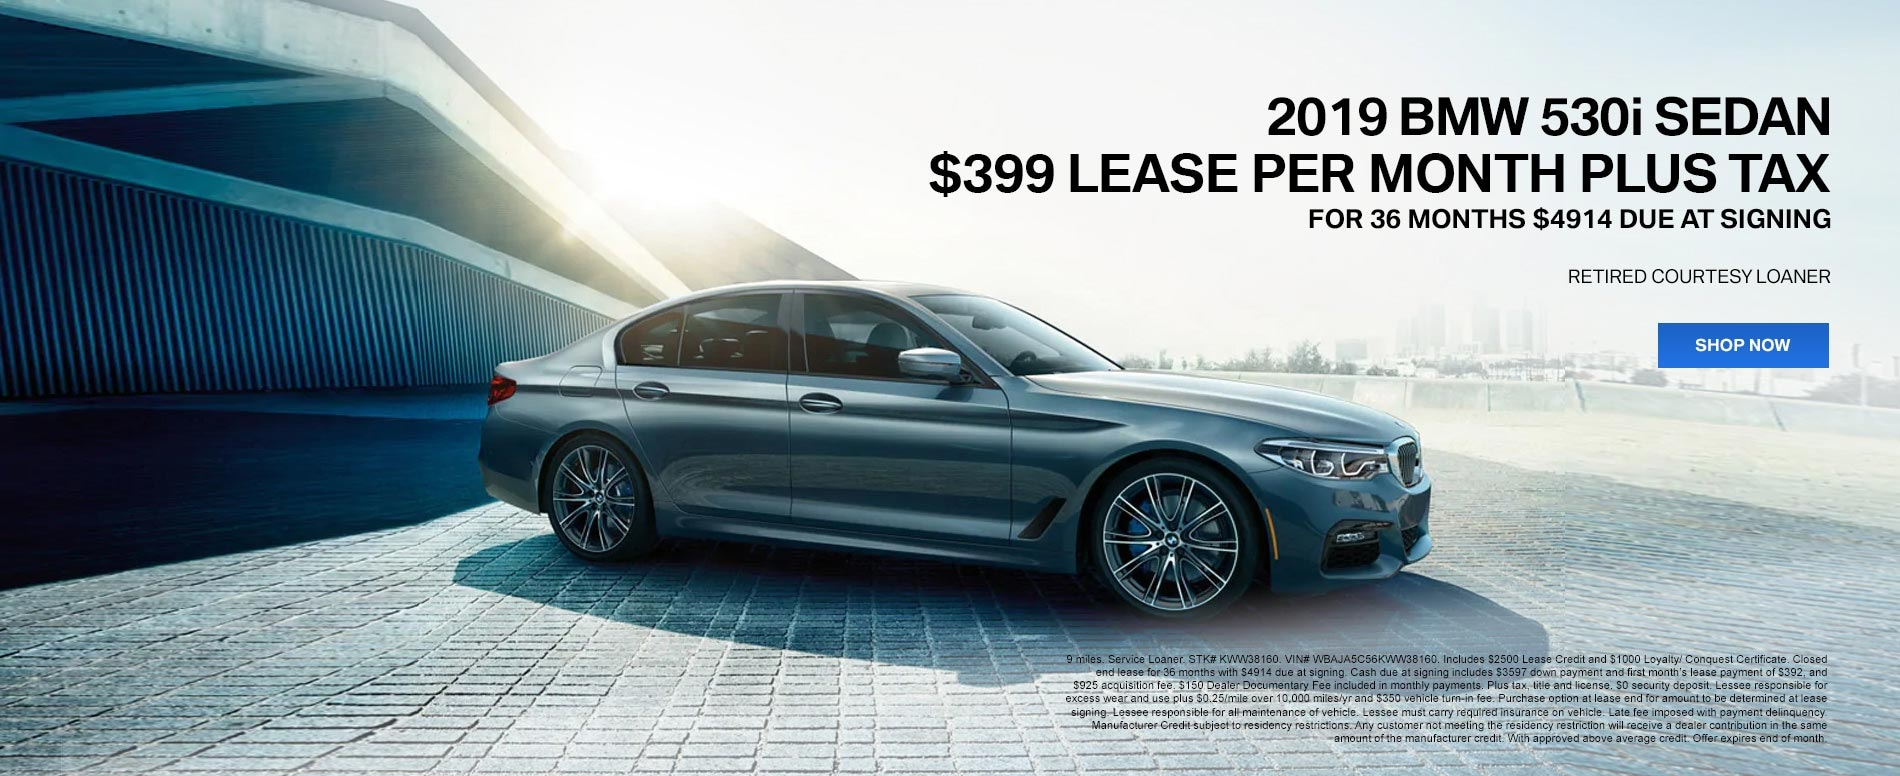 Bmw Dealership Near Me >> Bmw Dealership Near Me Dallas Tx Bmw Of Dallas